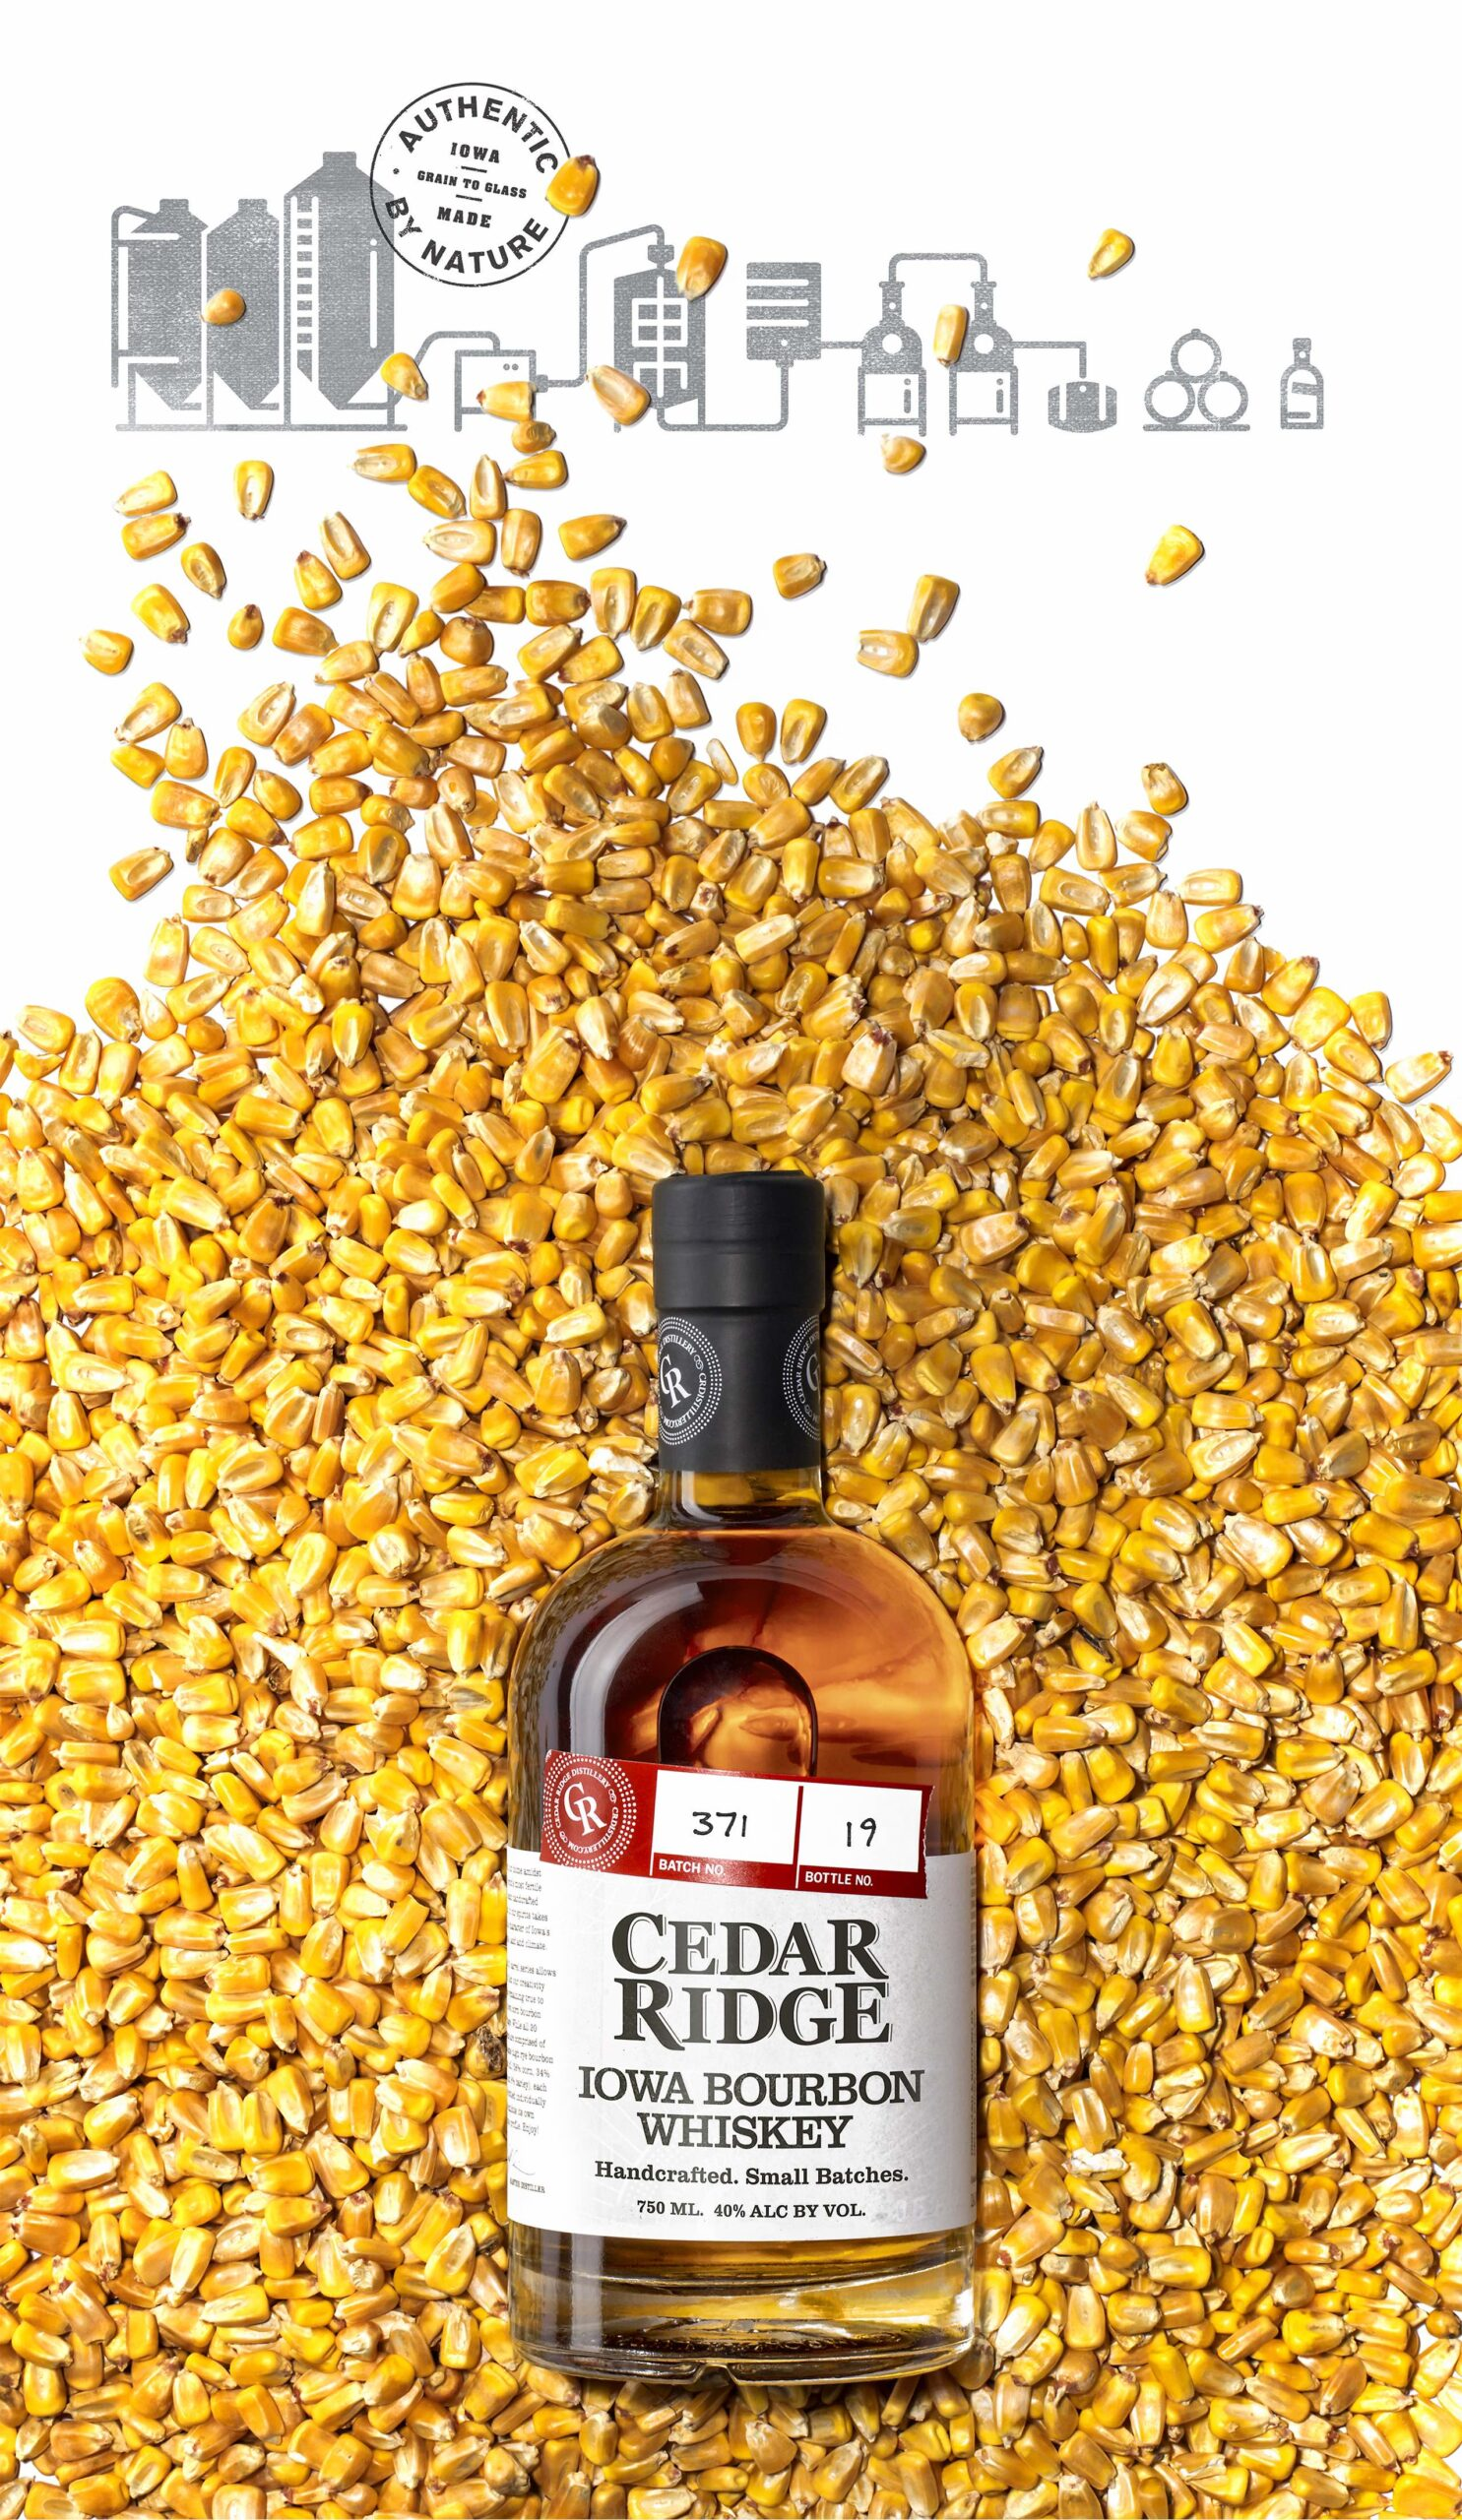 Cedar Ridge bottle in corn